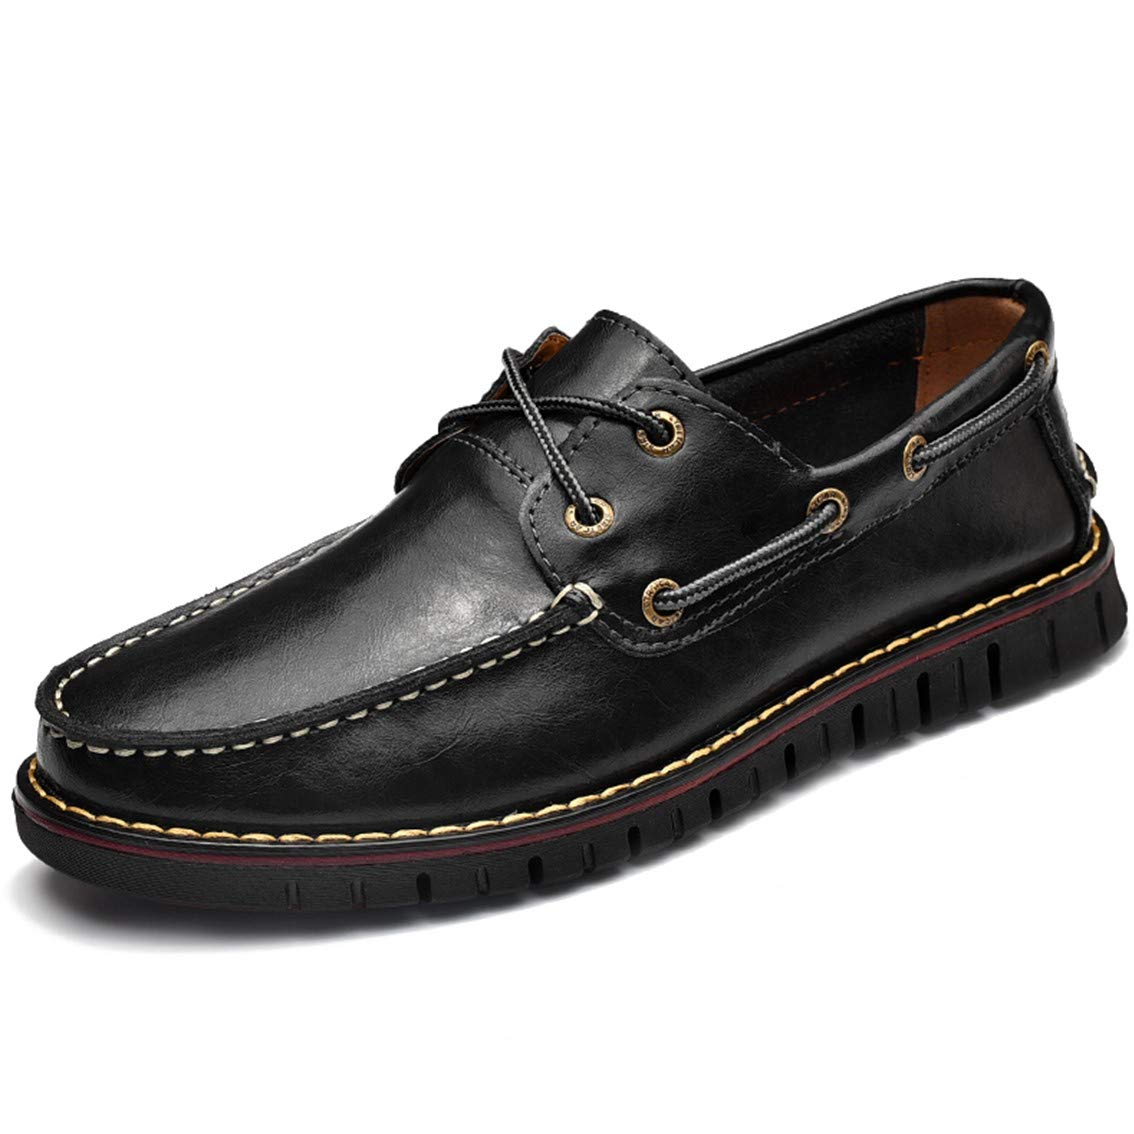 Mens Casual Loafer Genuine Leather Lace-up Boat Shoe Non-Slip Comfort Driving Moccasin Breathable Fashion Dress Shoe Black